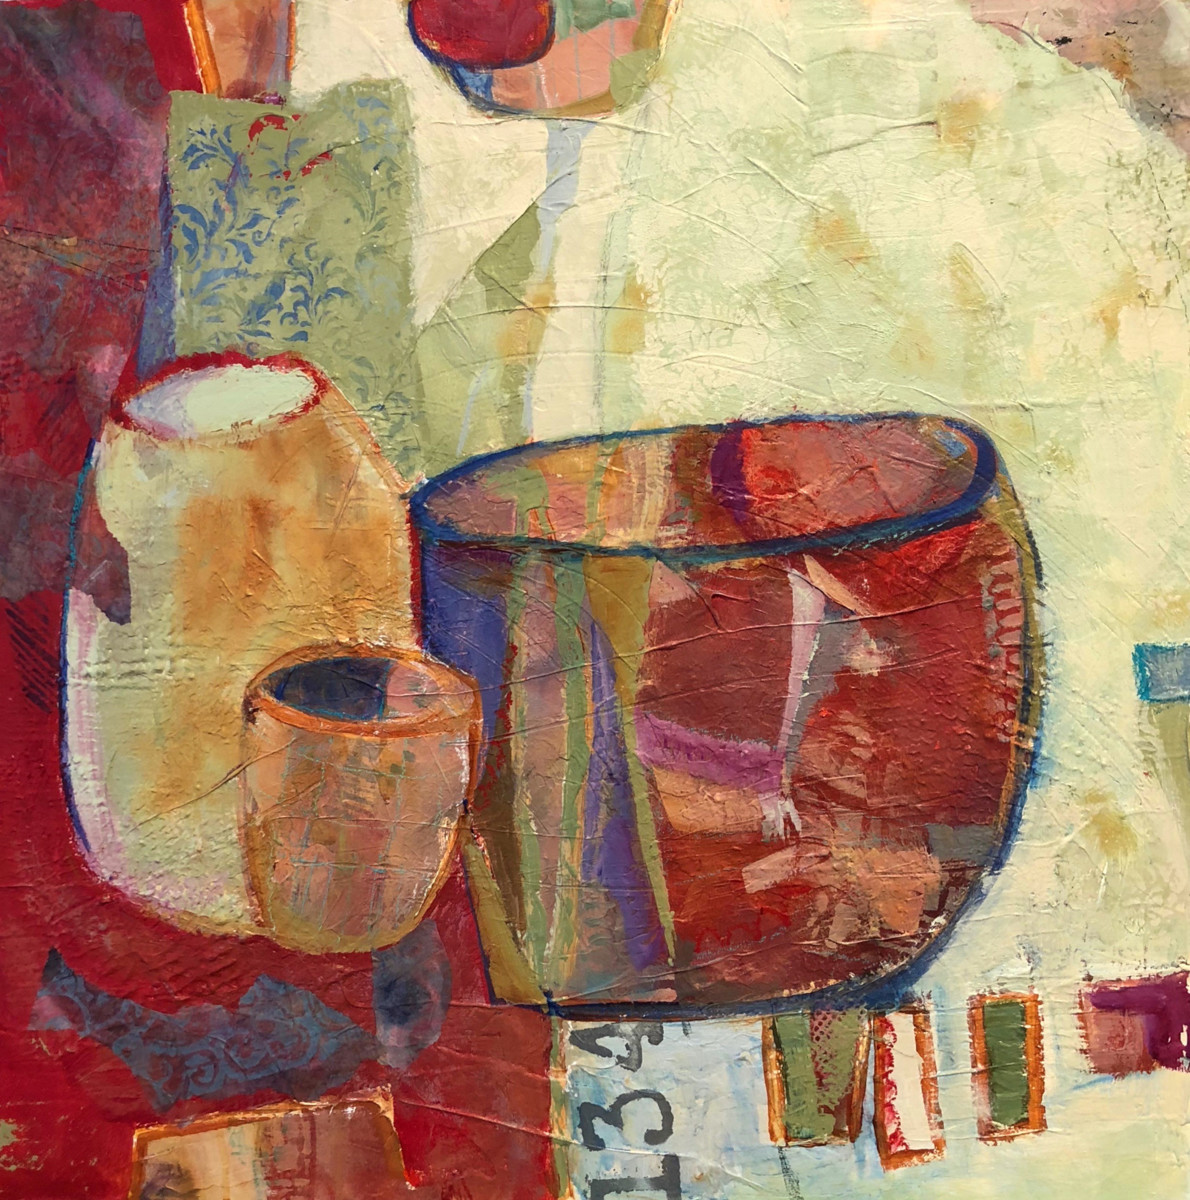 'Festive Collection' by Krasner (large view)